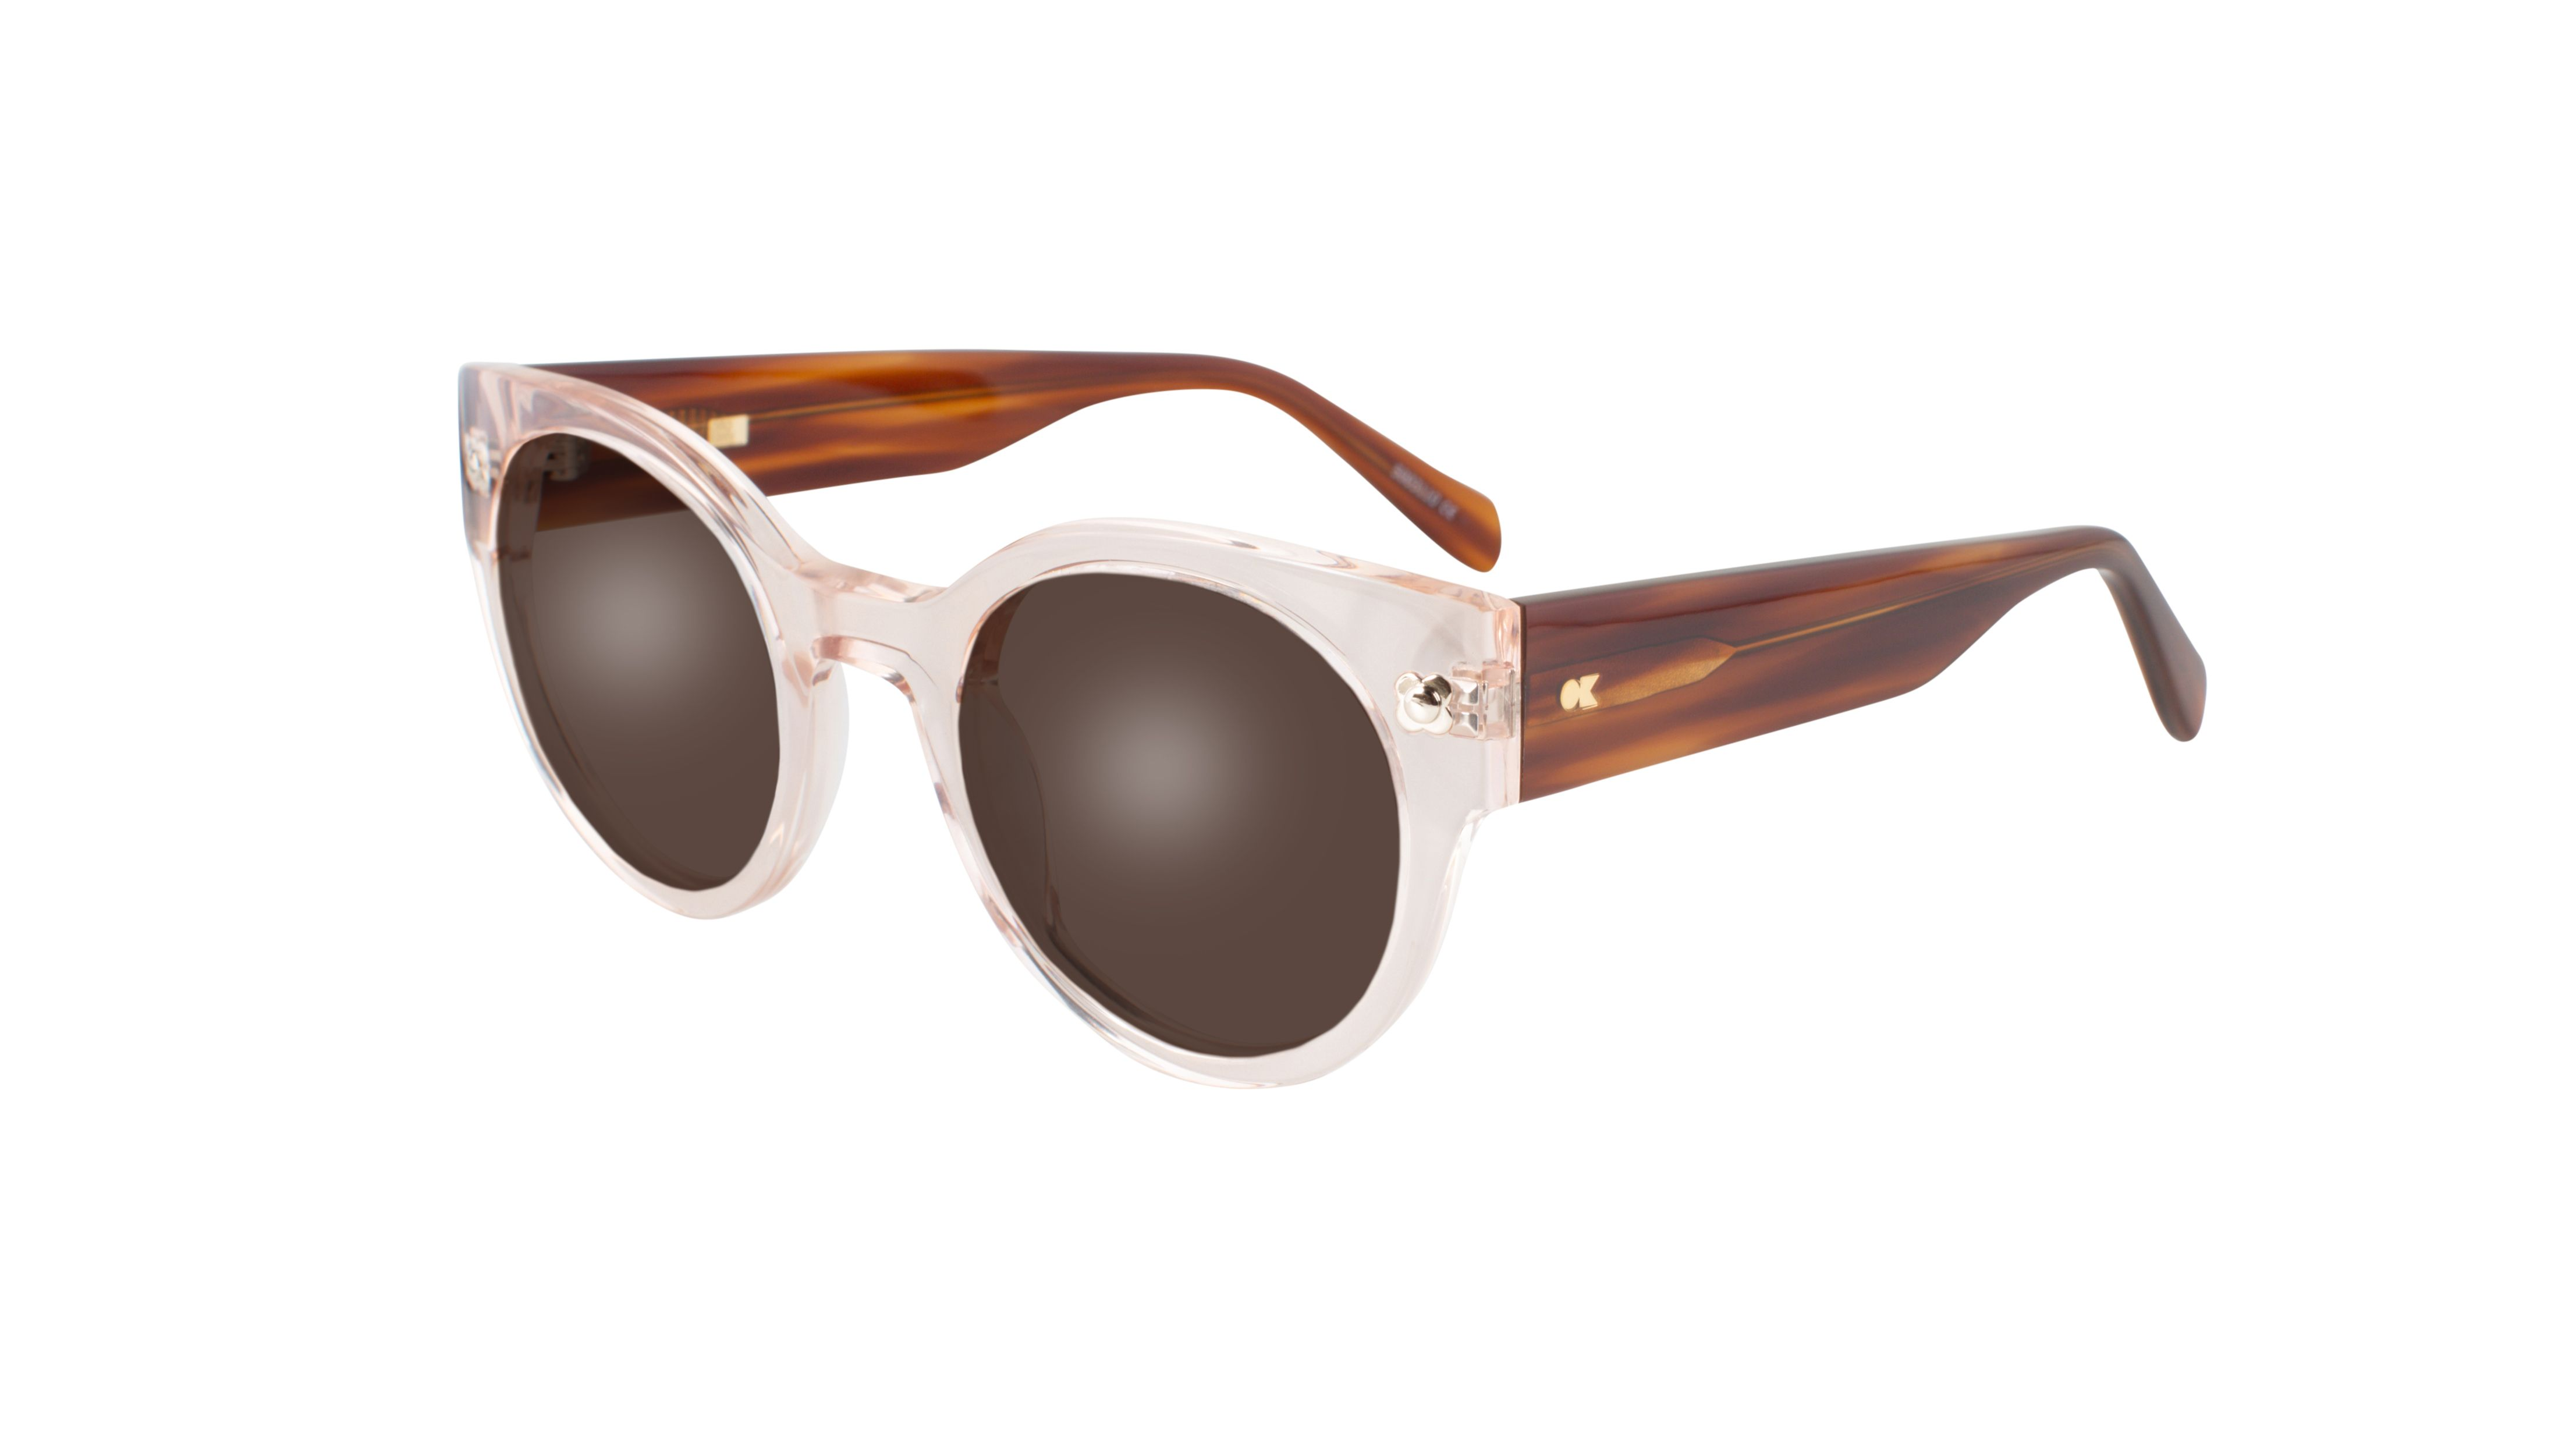 undefeated x new release new list First Look At The Orla Kiely X Specsavers Eyewear Range